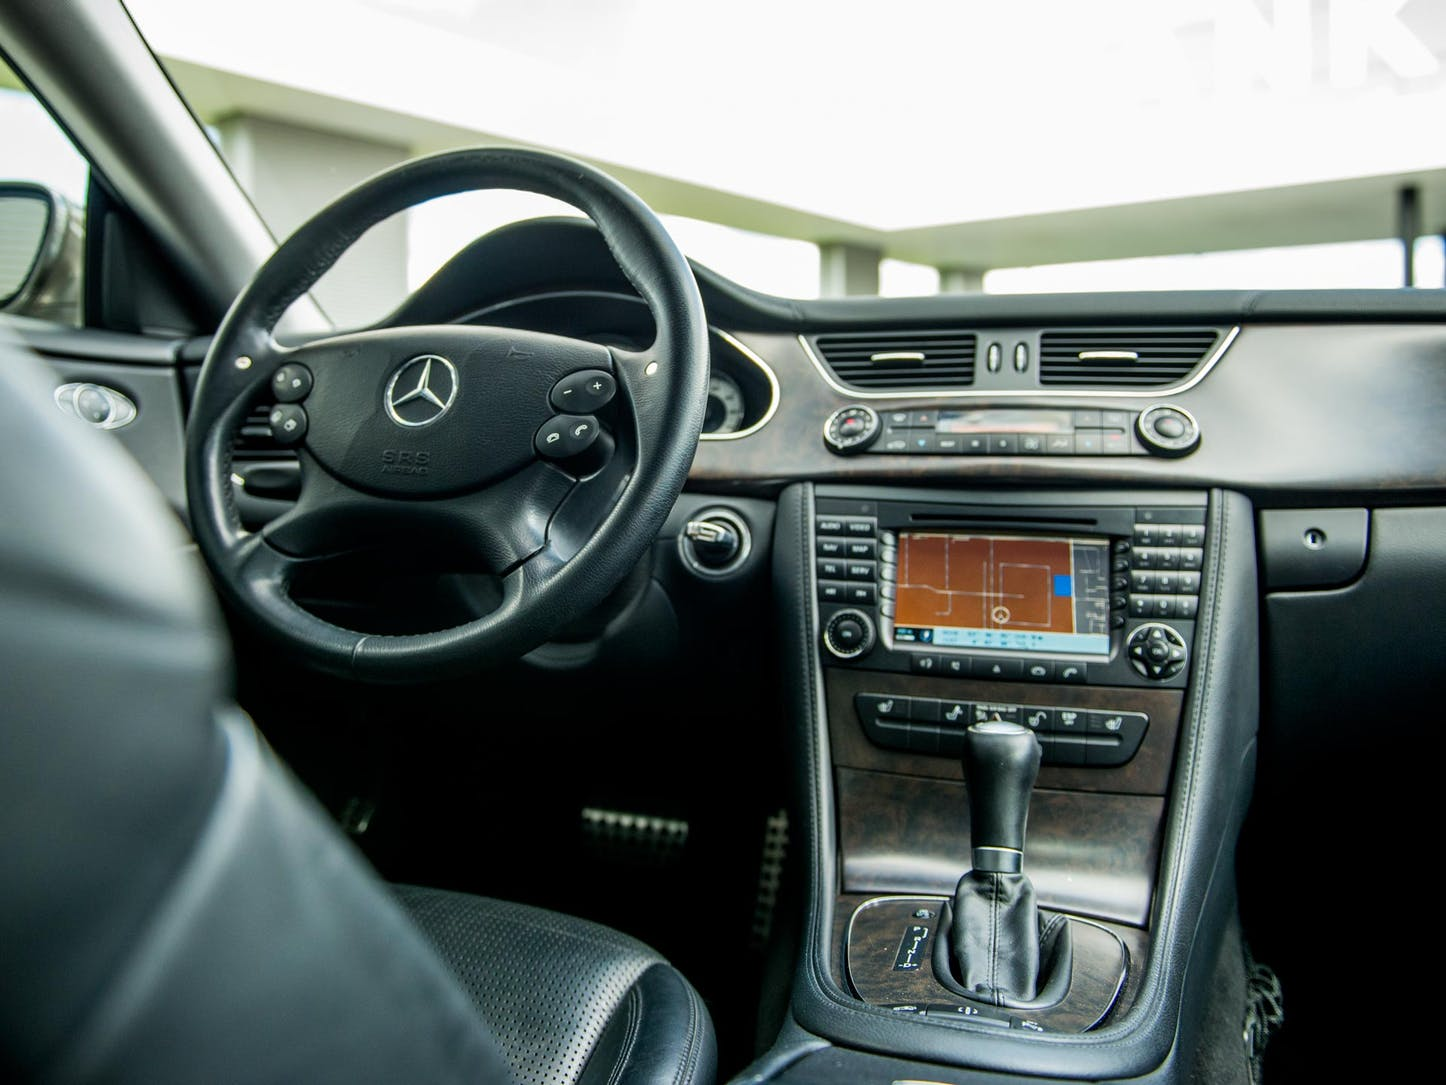 Tweedehands Mercedes-Benz CLS 55 AMG 2005 occasion